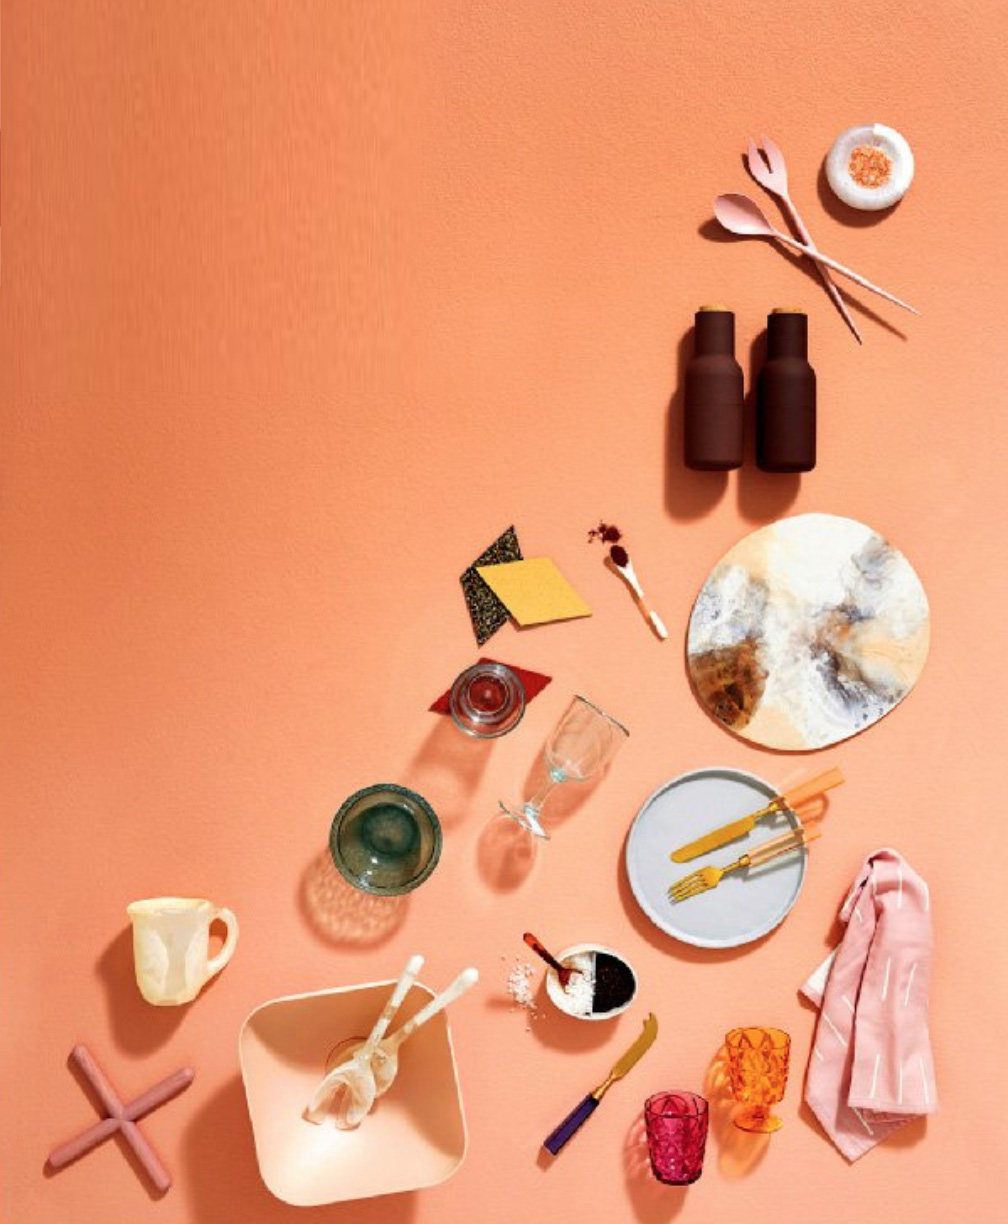 Flat Lay Styling by Kerrie-Ann Jones Stylist.  Sydney & Melbourne.  Still Life Styling, Art Directed Styling, Earthy Colour Palette, Sunburnt Colours, Tabletop Styling. #flatlay #stylist #stilllife